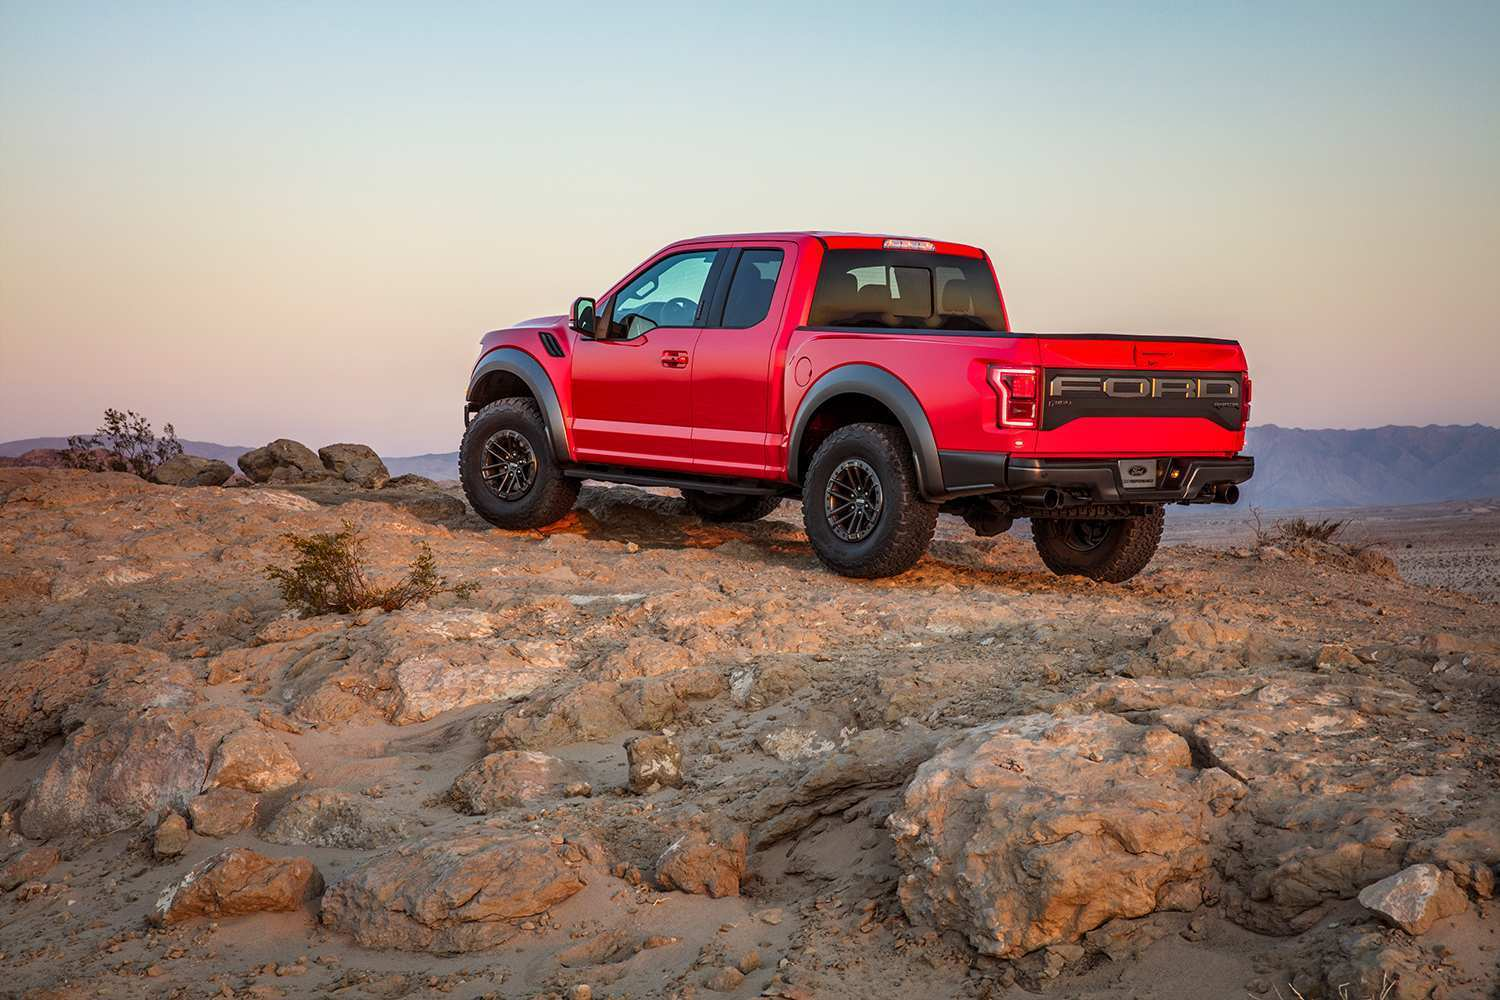 54 All New 2019 Ford Raptor New Concept by 2019 Ford Raptor